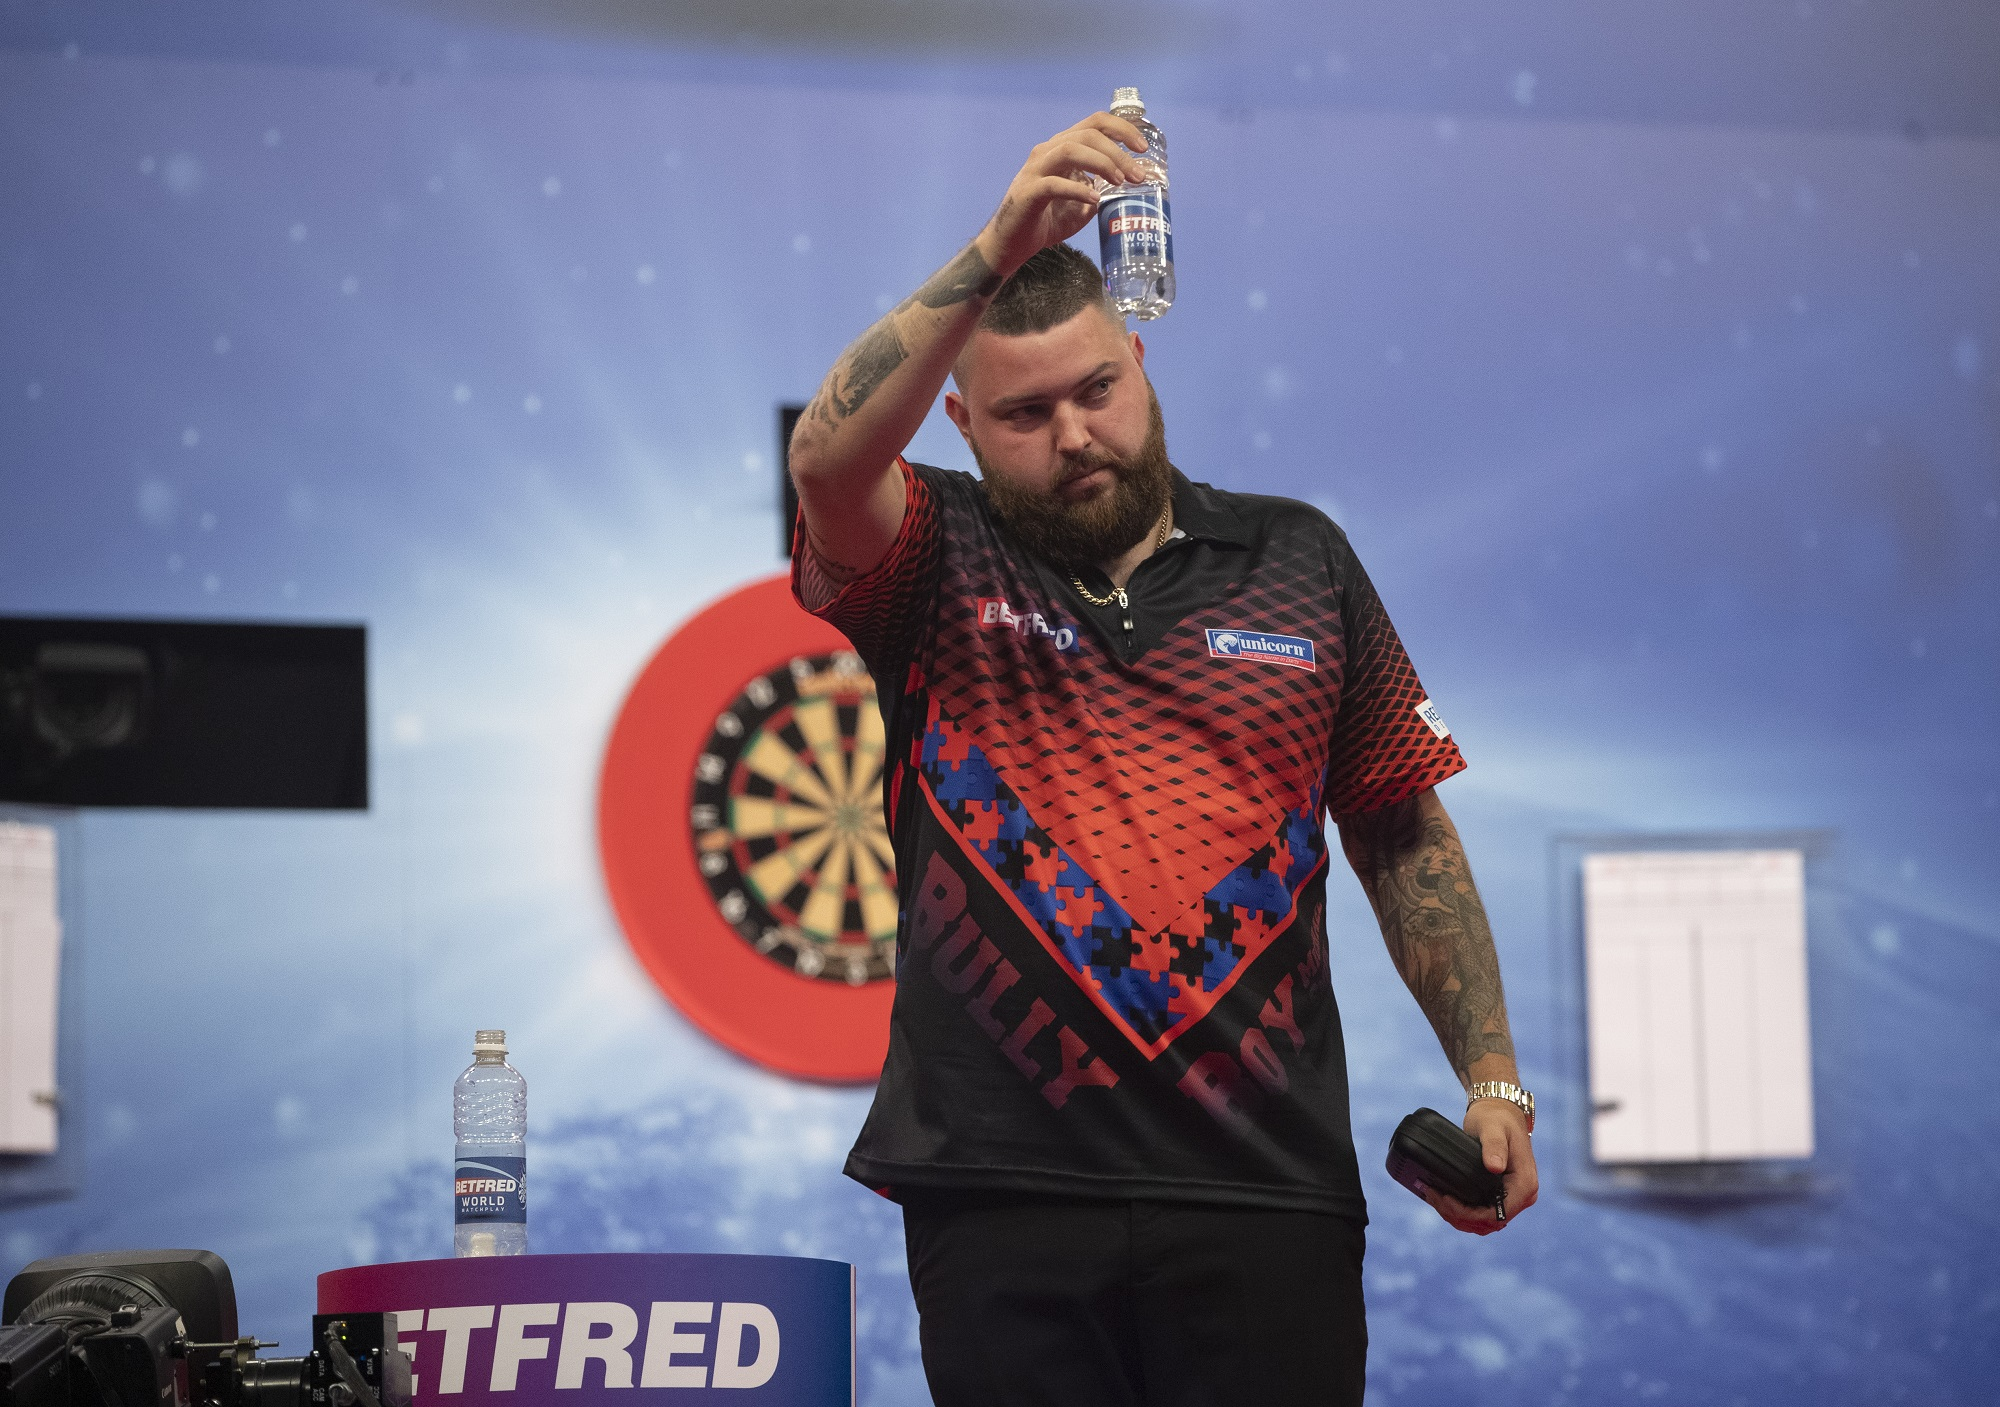 BullyBoy Michael Smith Spurred On By Wayne Mardle's Comments